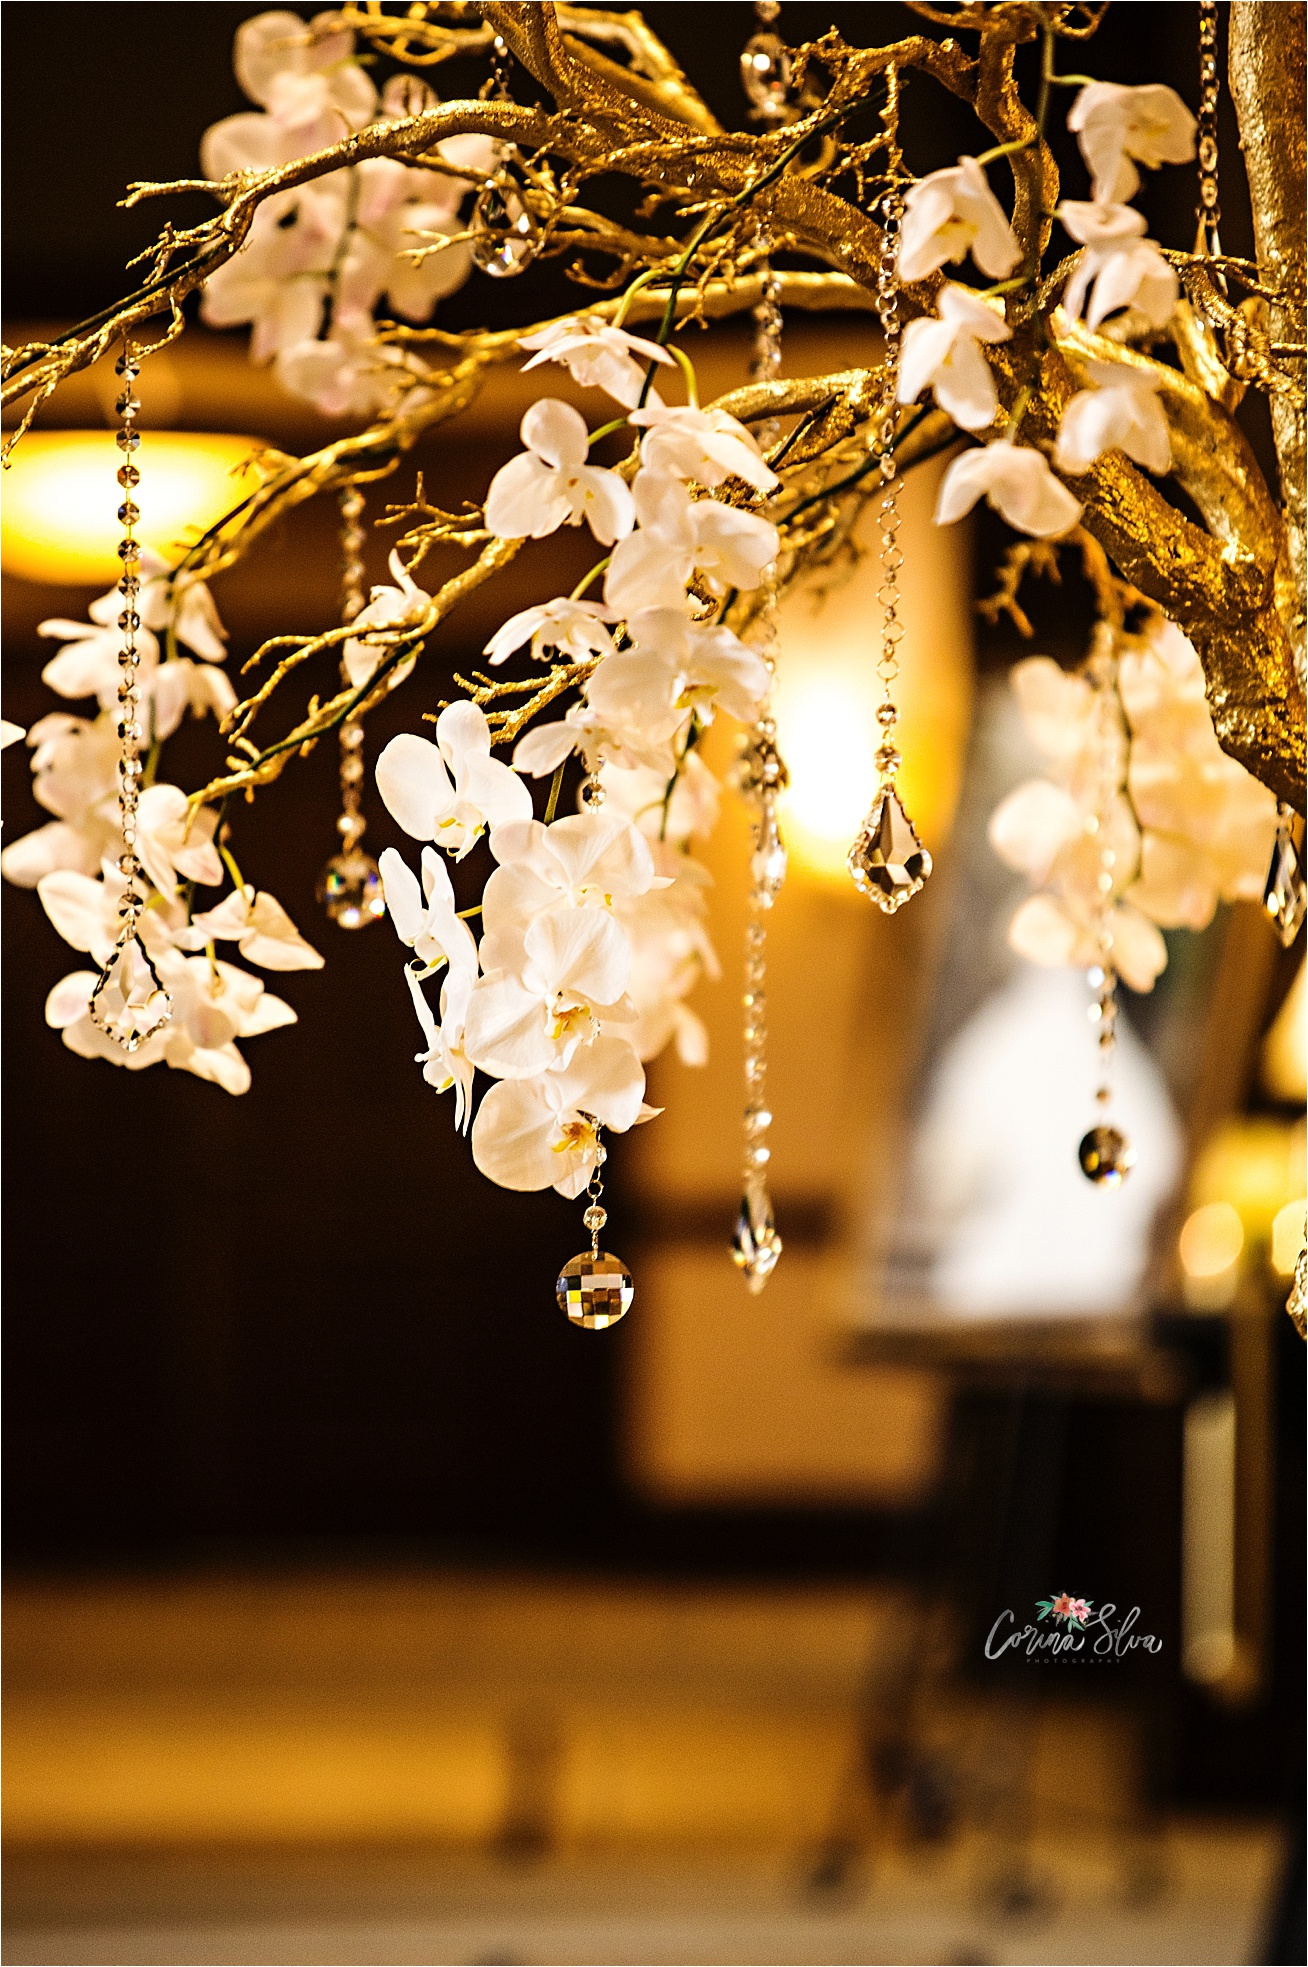 RSG-Event-and-Designs-luxury-wedding-decor-photos, Corina-Silva-Studios_0027.jpg